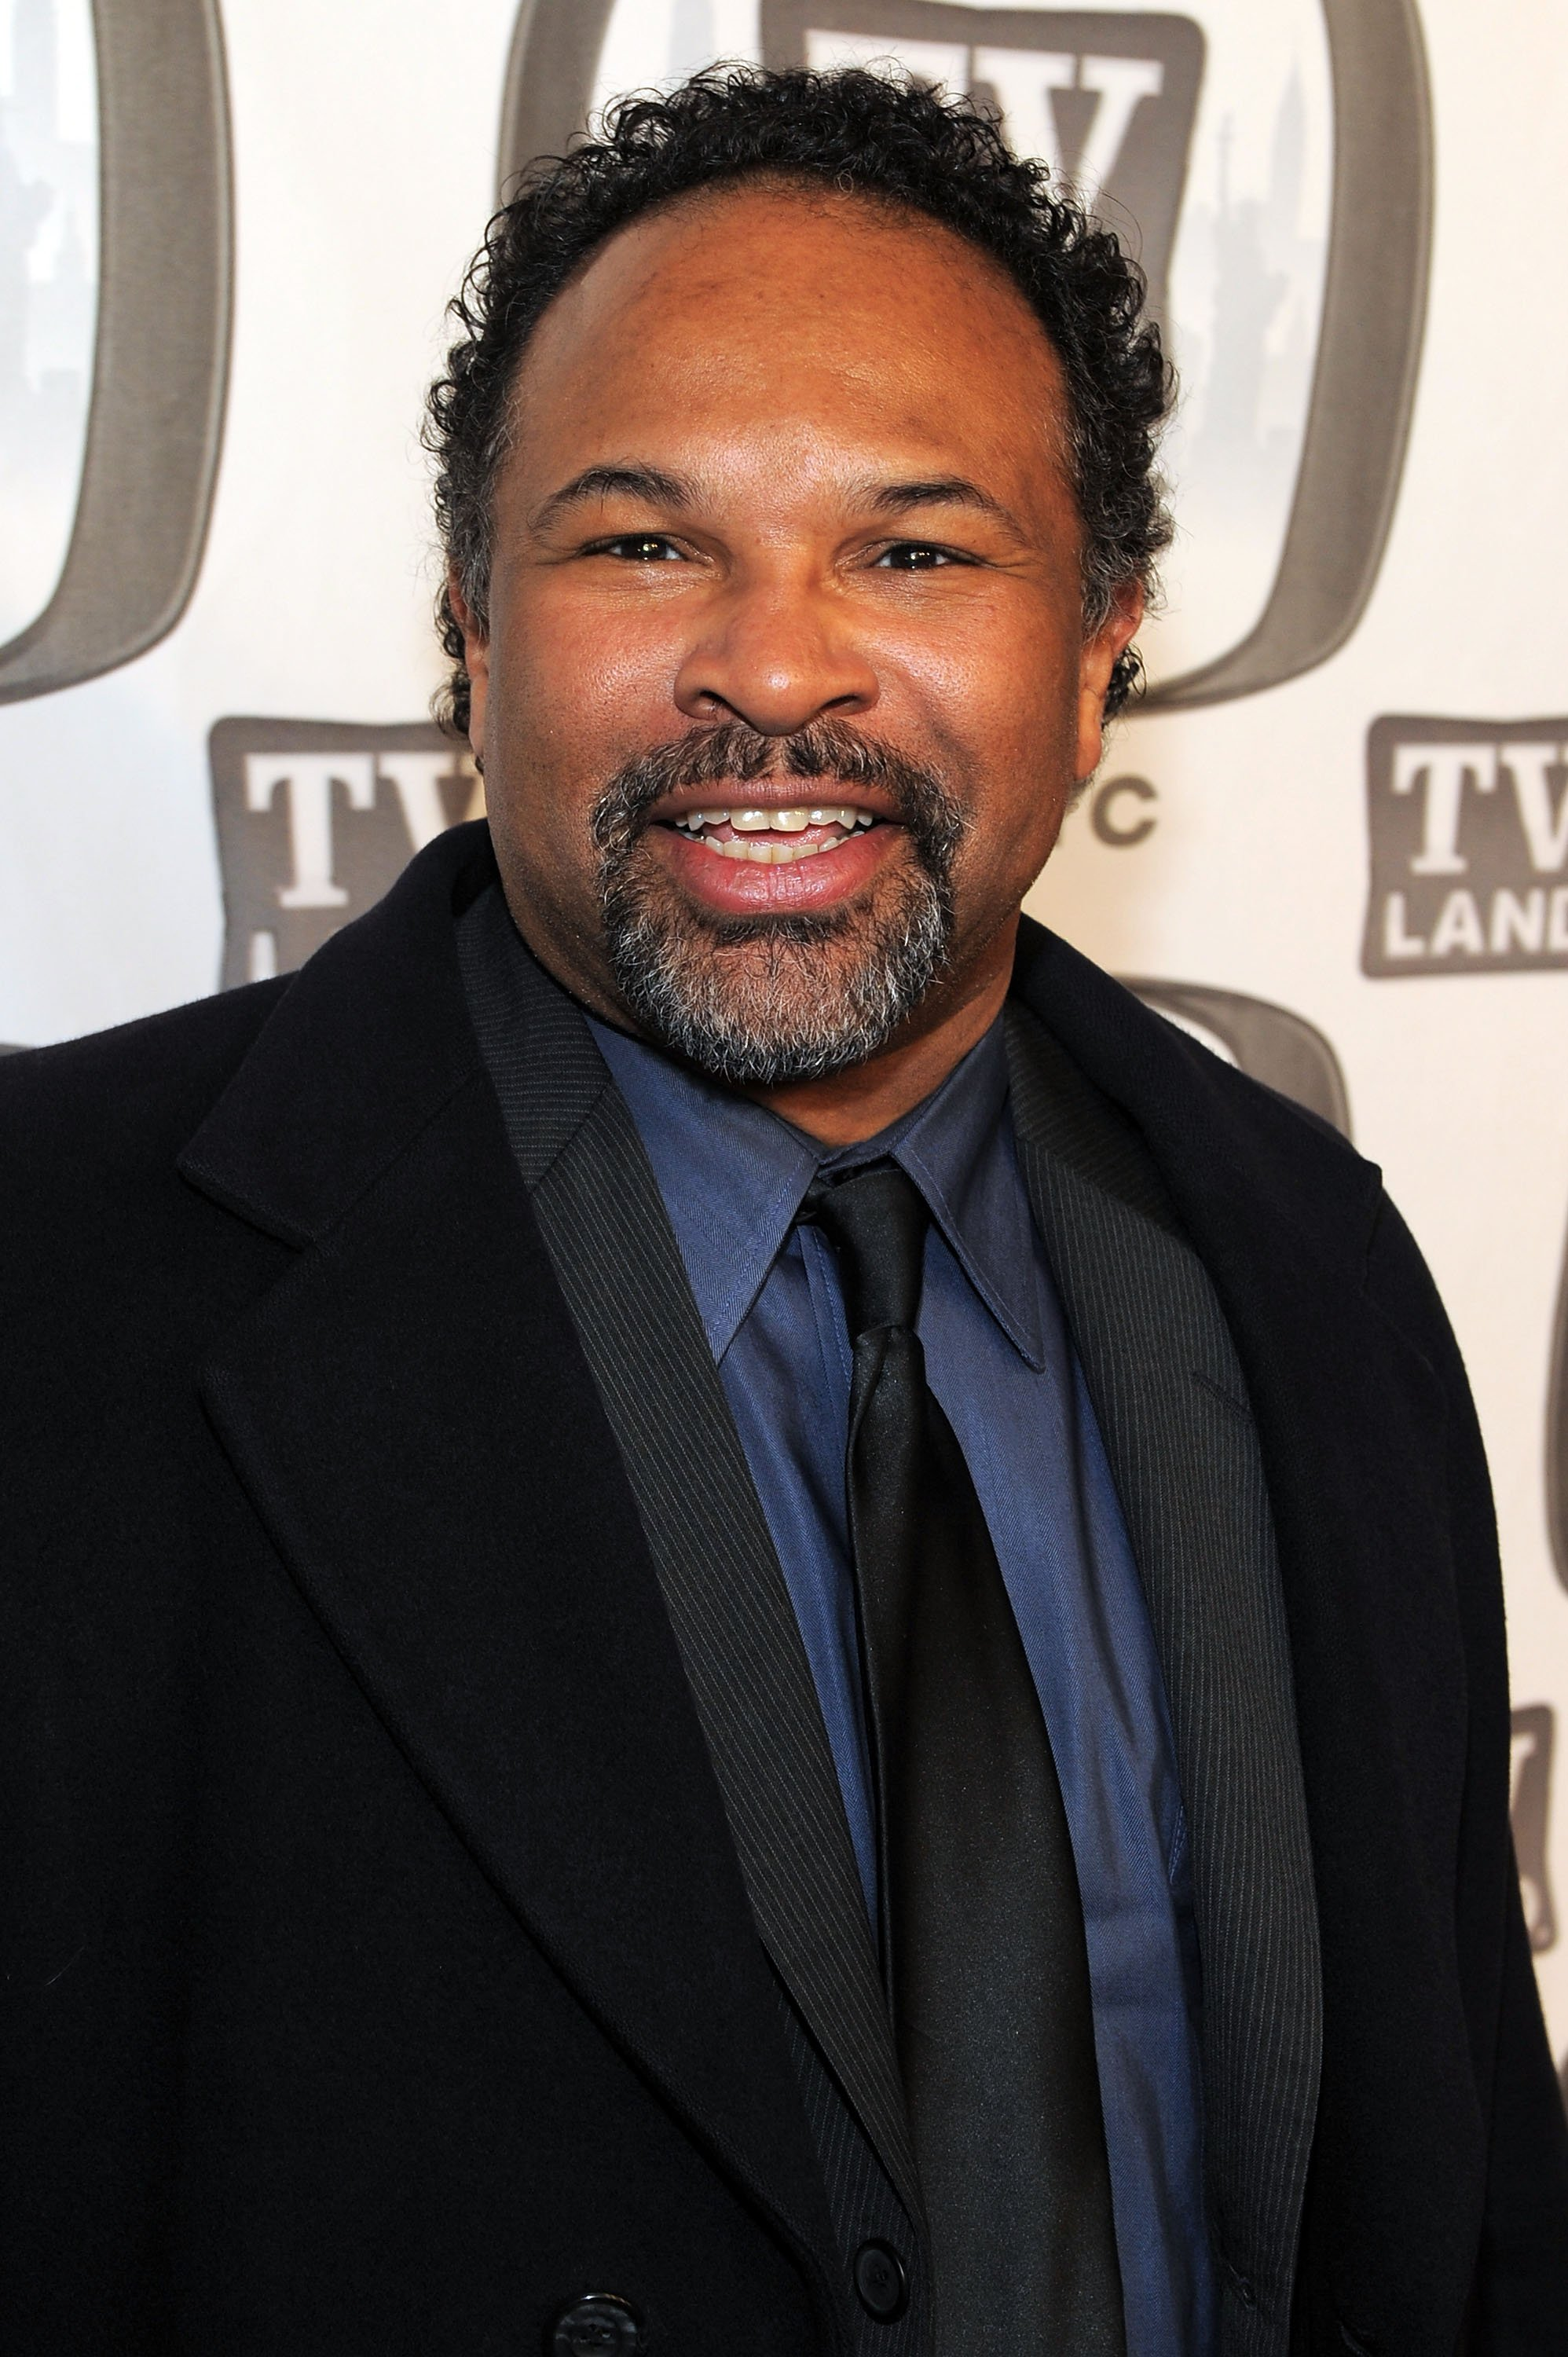 Geoffrey Owens on April 10, 2011 in New York City | Photo: Getty Images